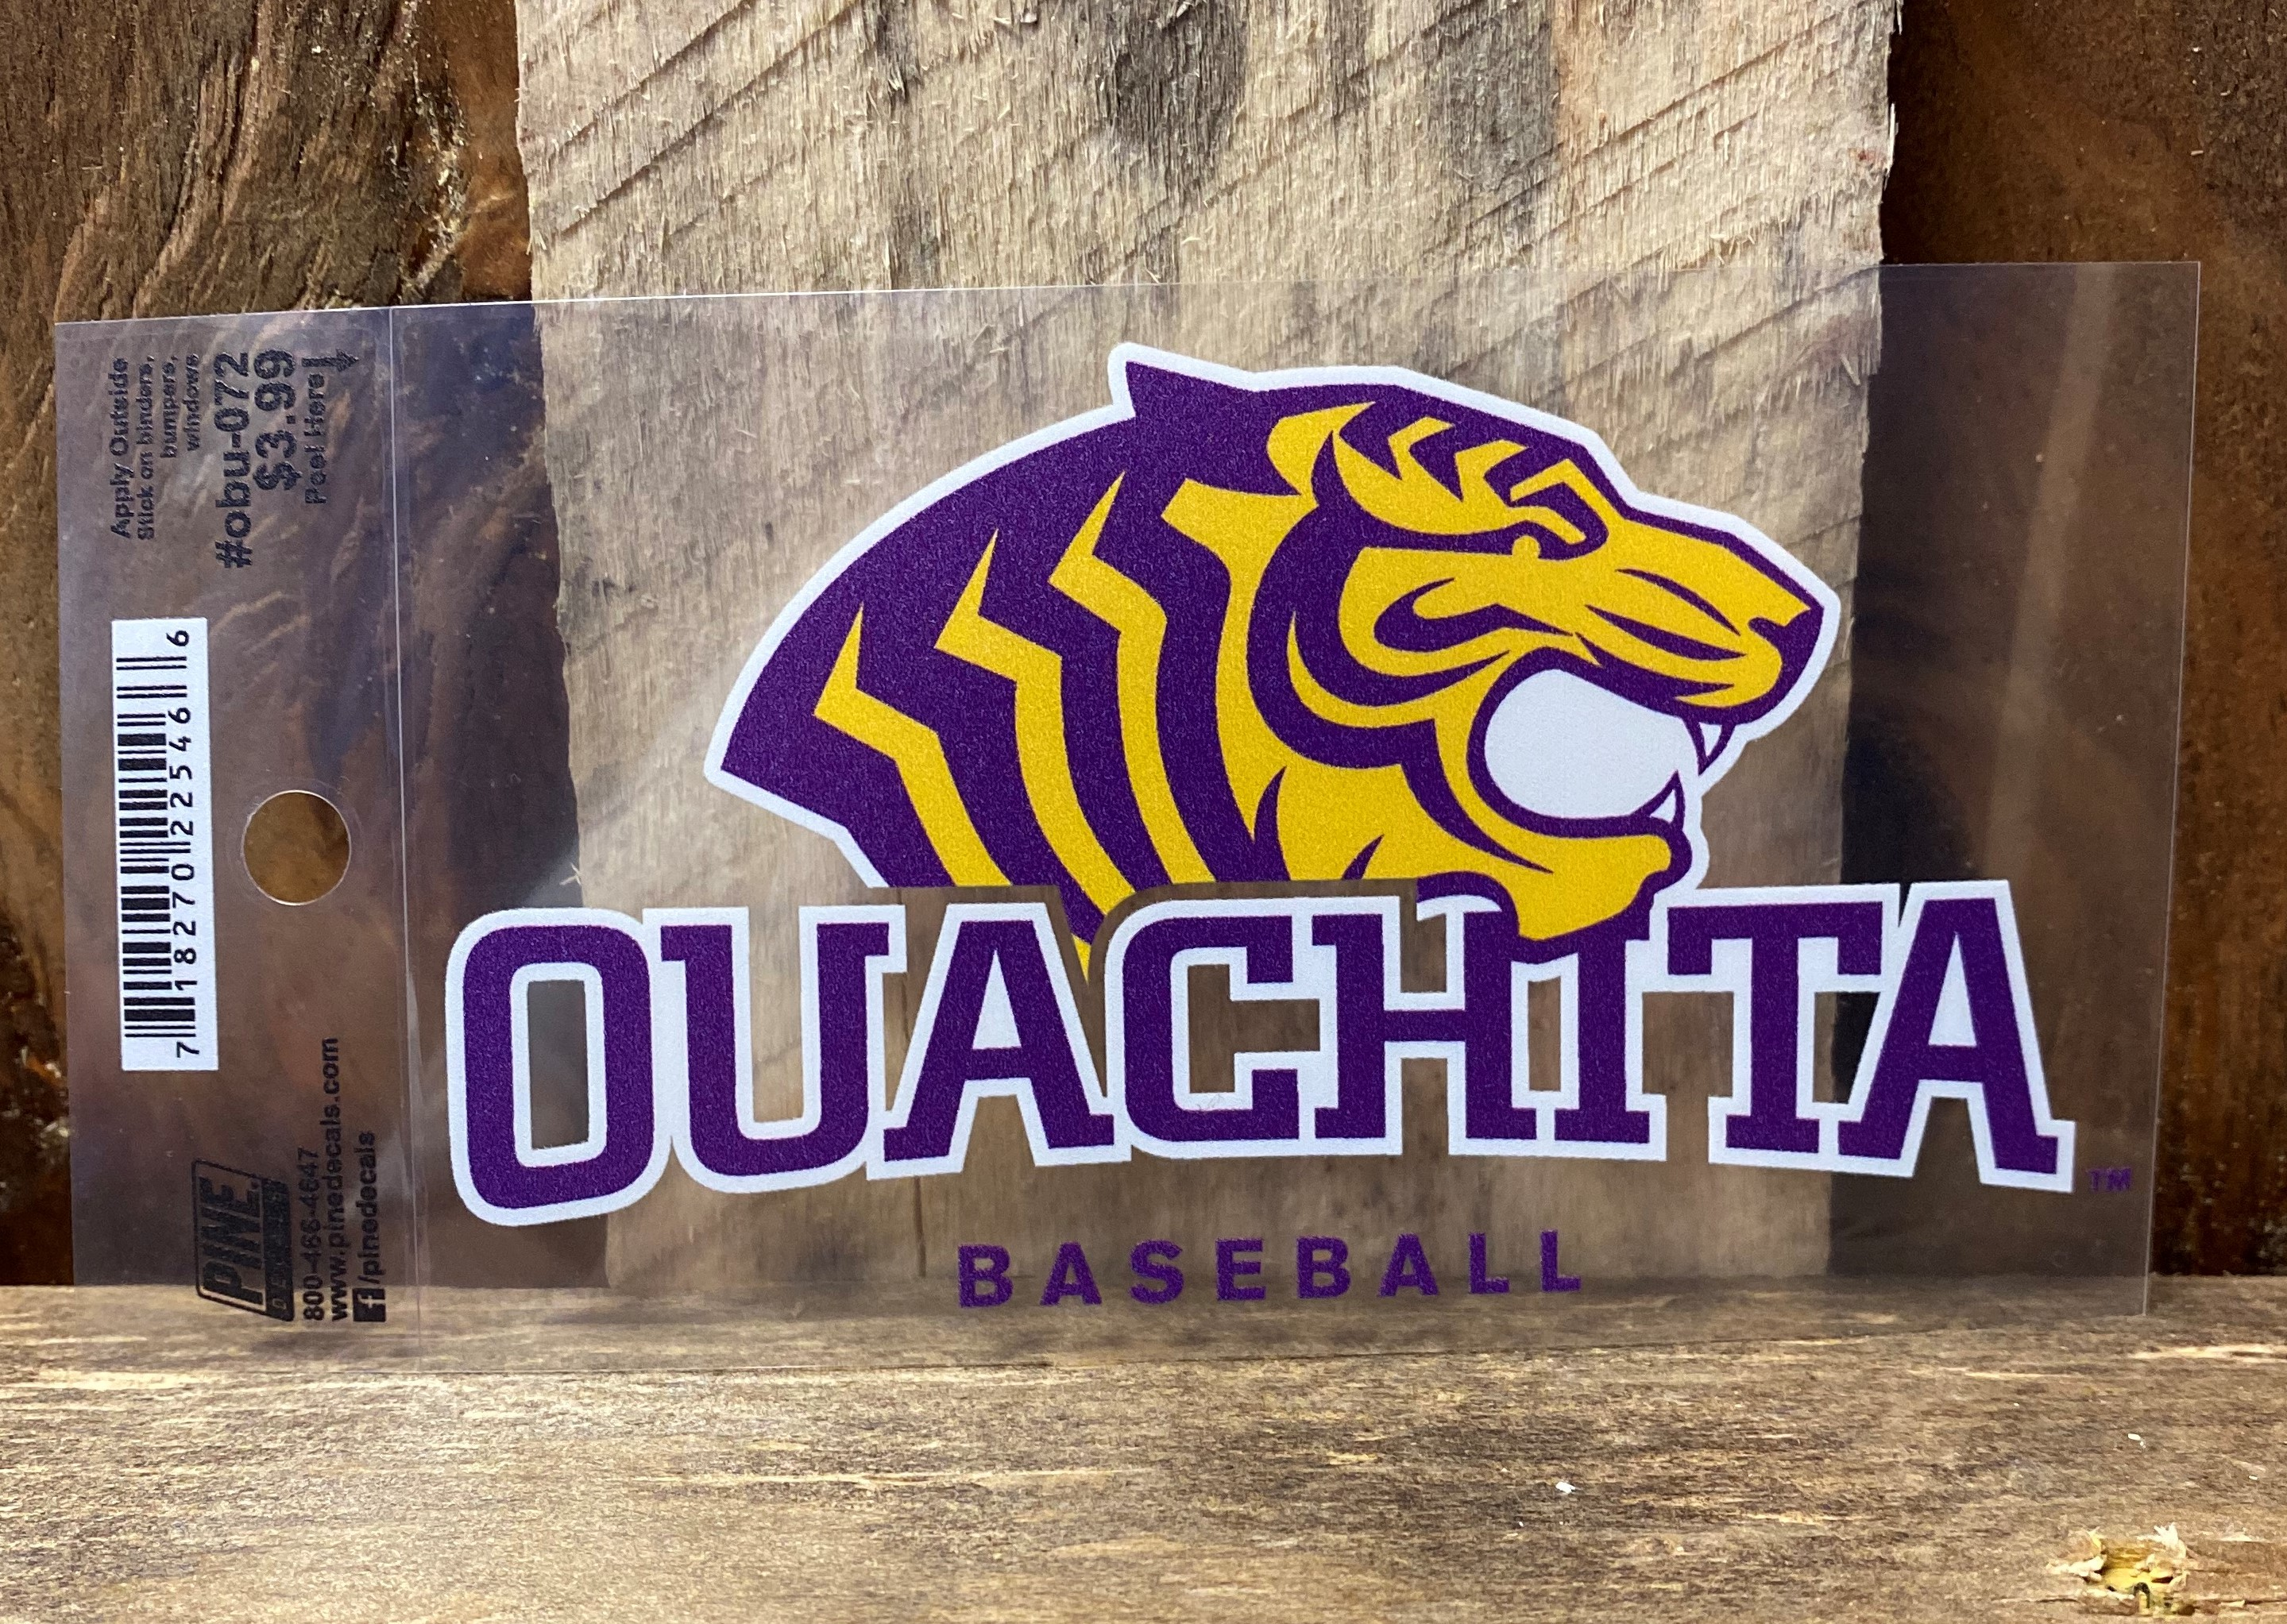 OUACHITA BASEBALL CAR DECAL